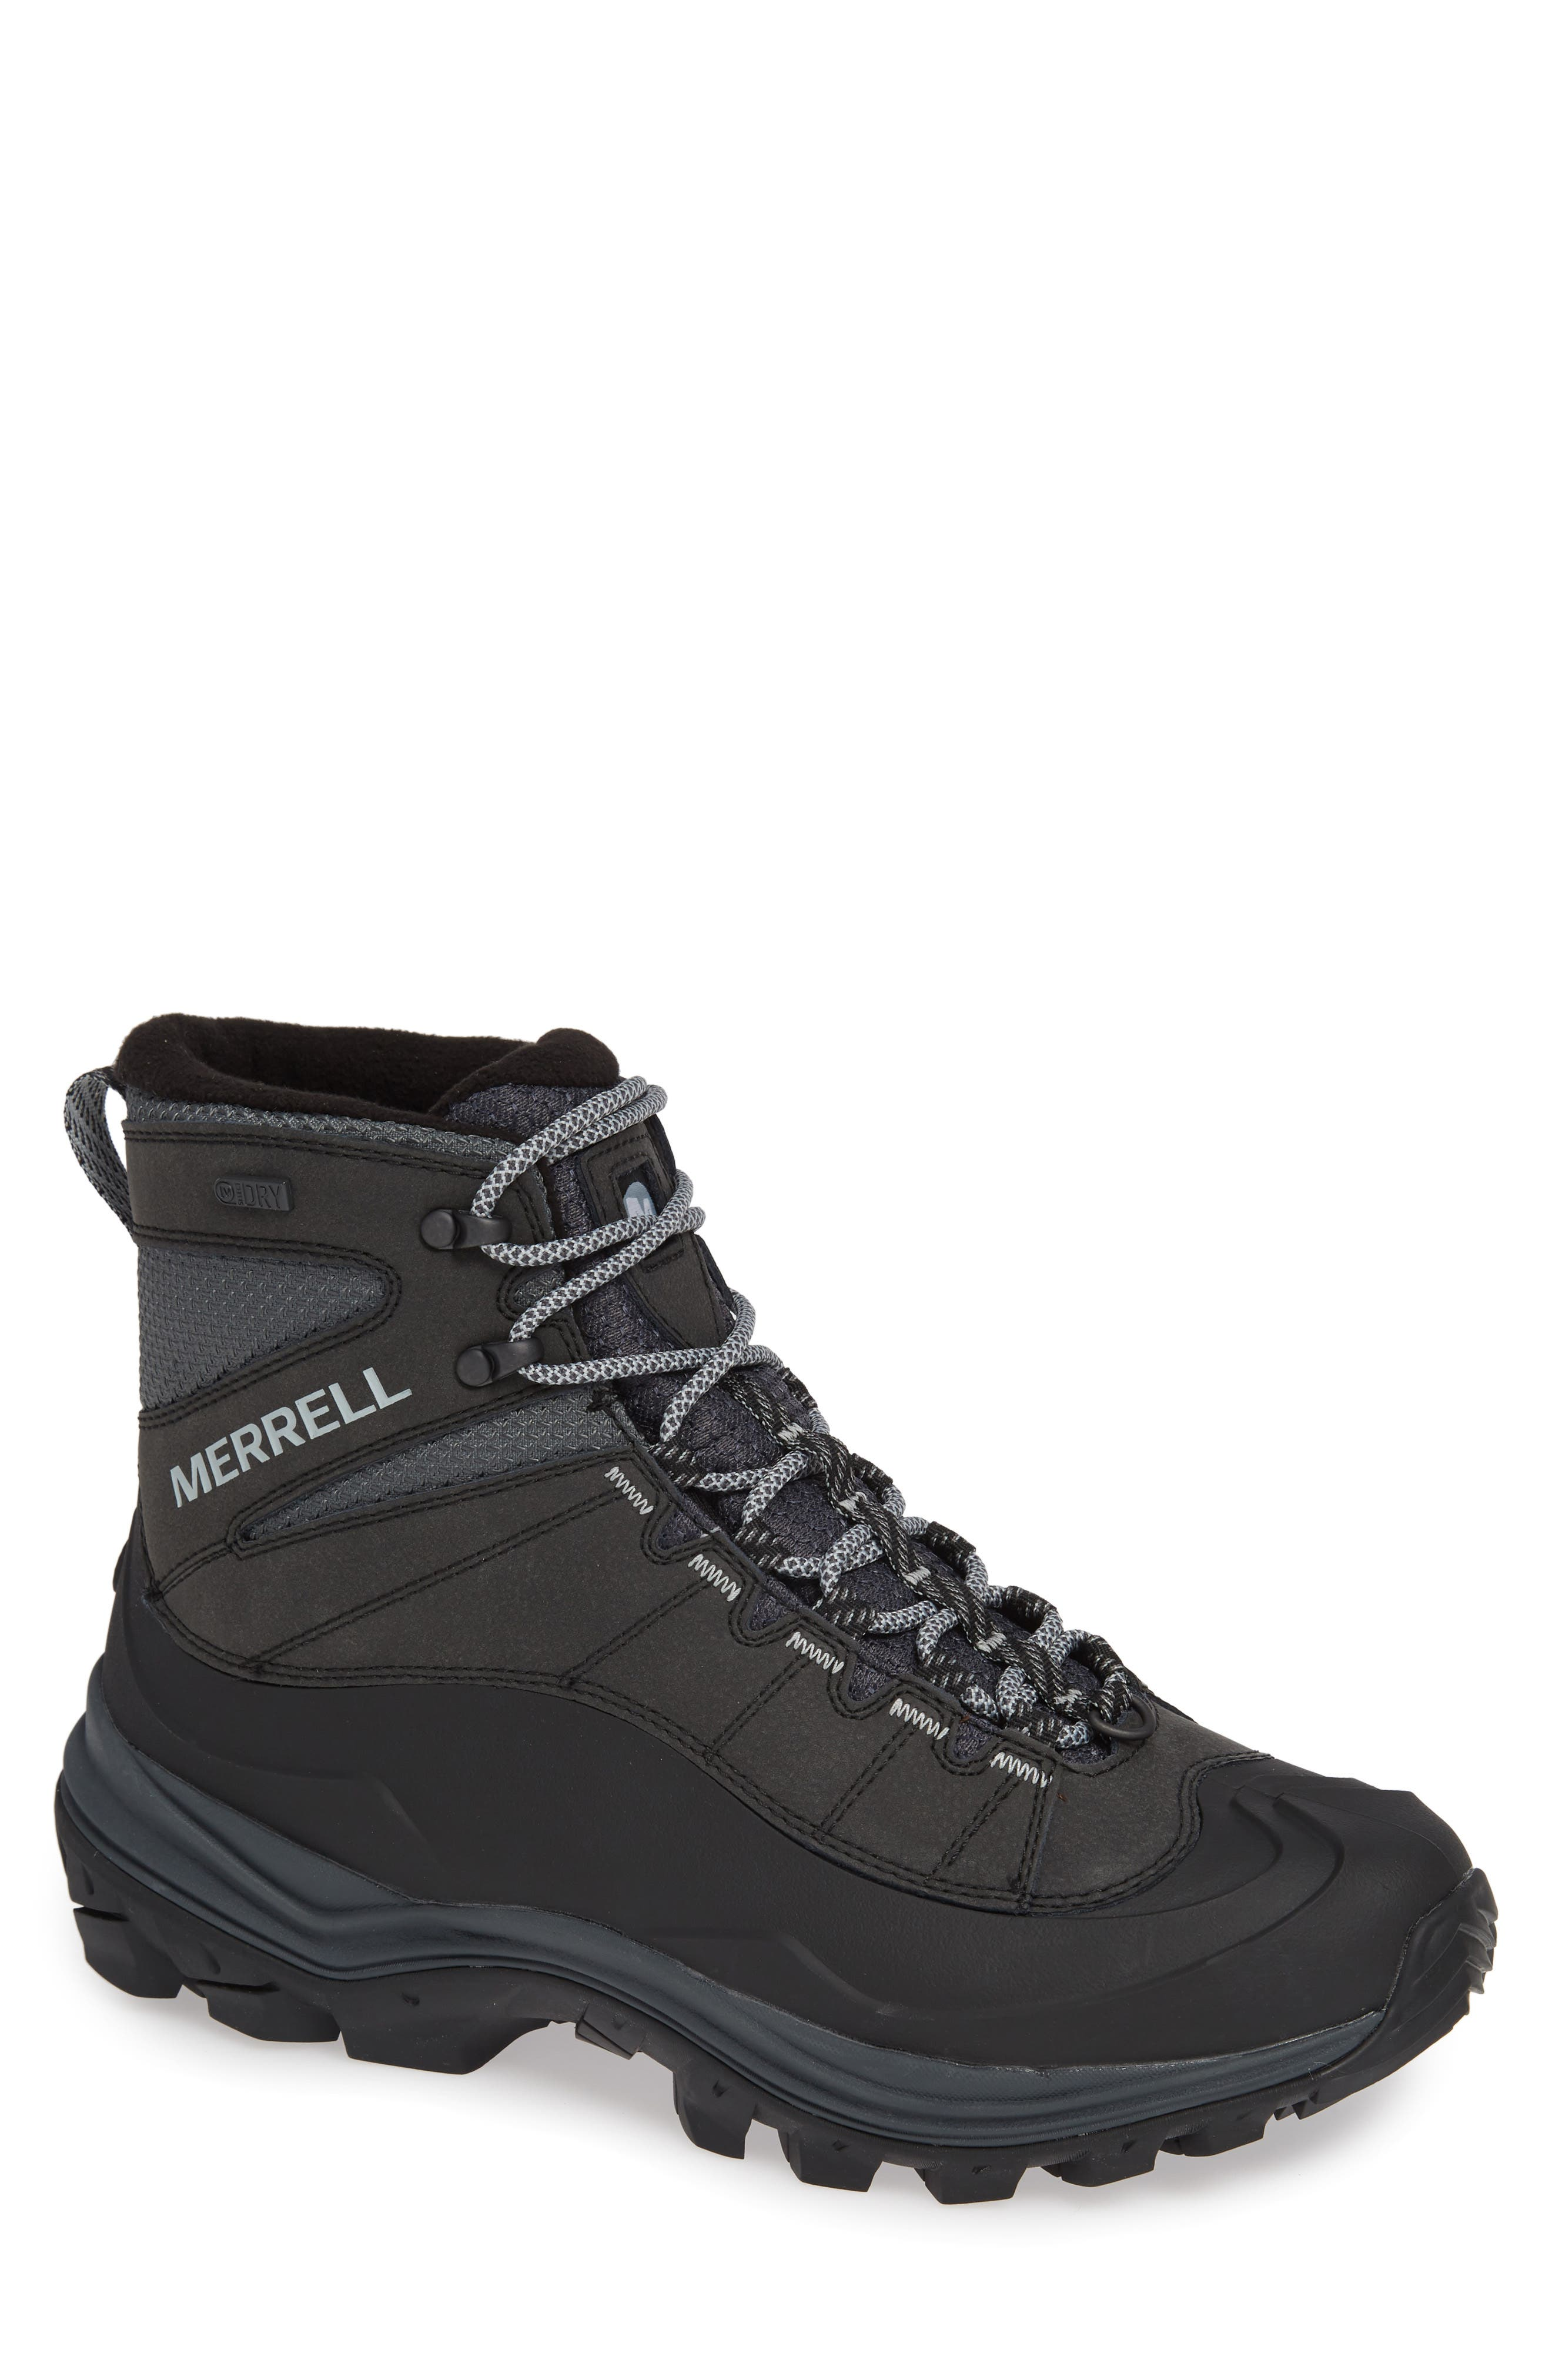 Thermo Chill Waterproof Snow Boot,                         Main,                         color, BLACK